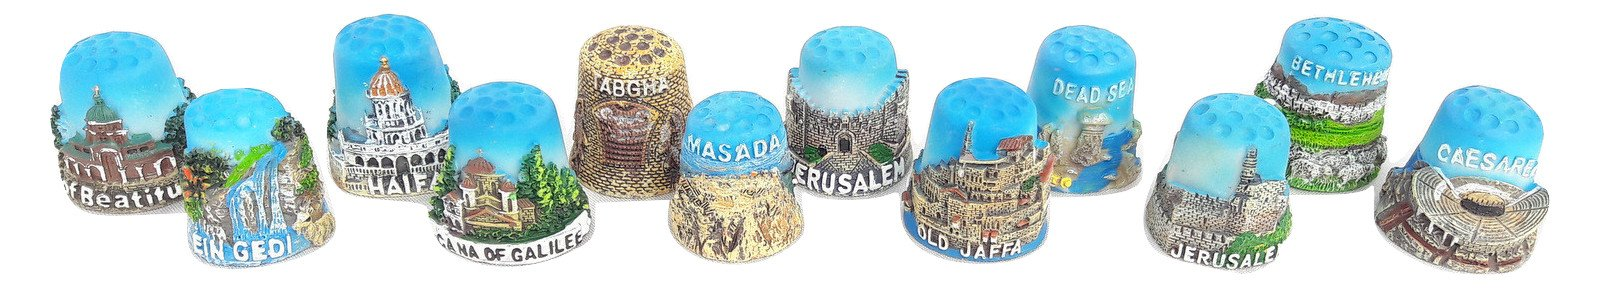 12pc Thimble Souvenir From Israel&palestine Sewing Holyland Thimbles Collection by holyland souvenir